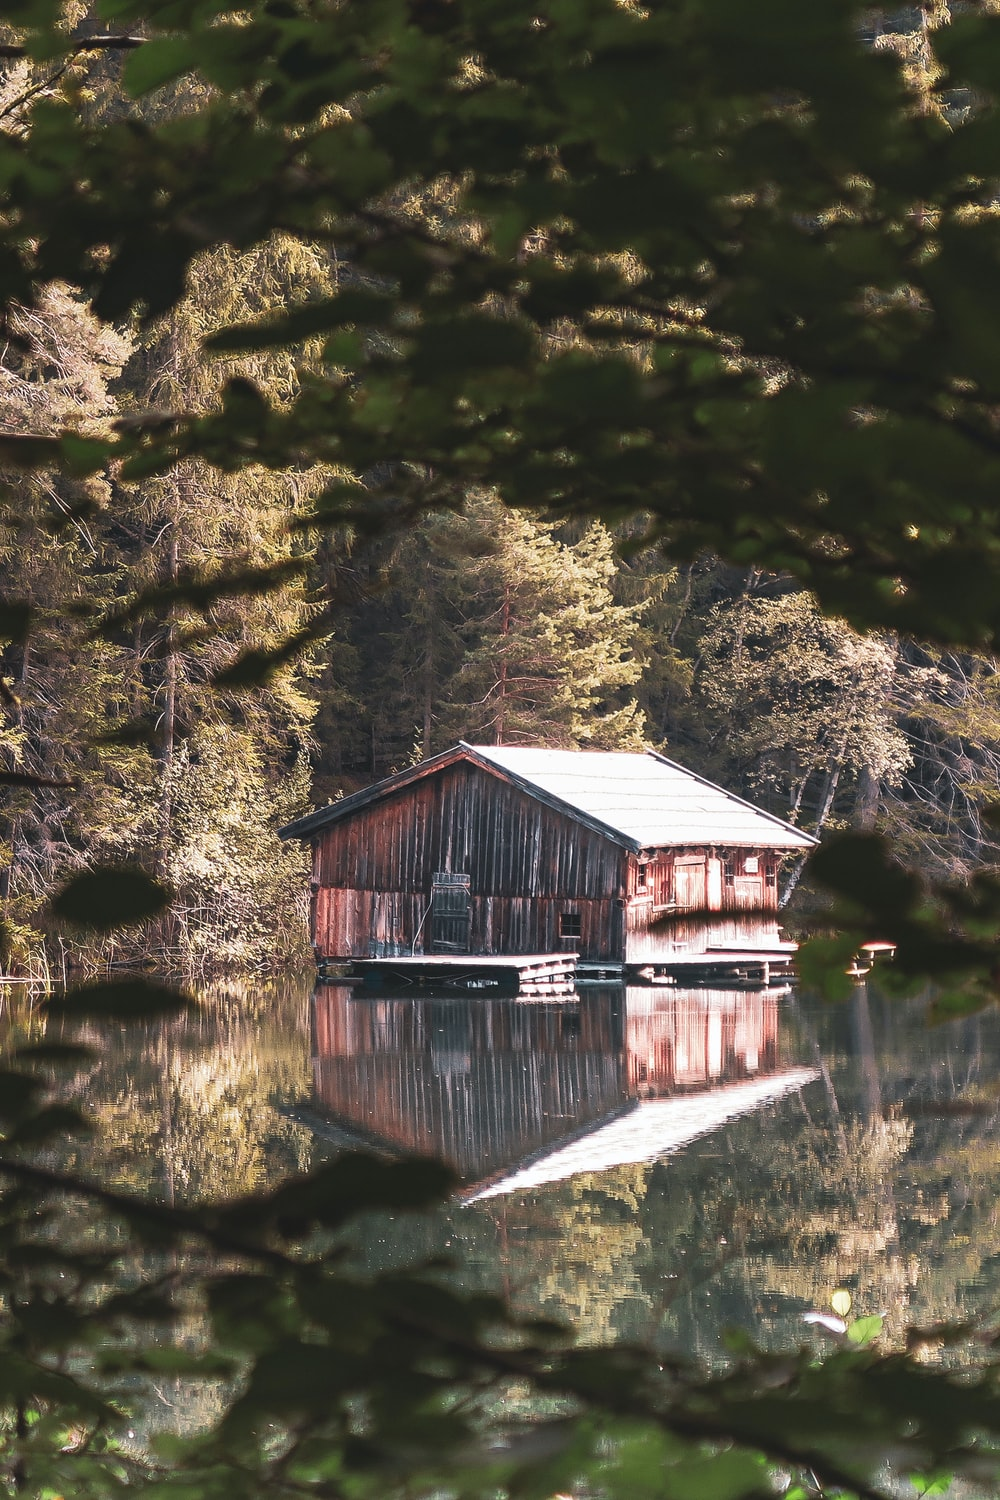 brown wooden house near body of water and trees